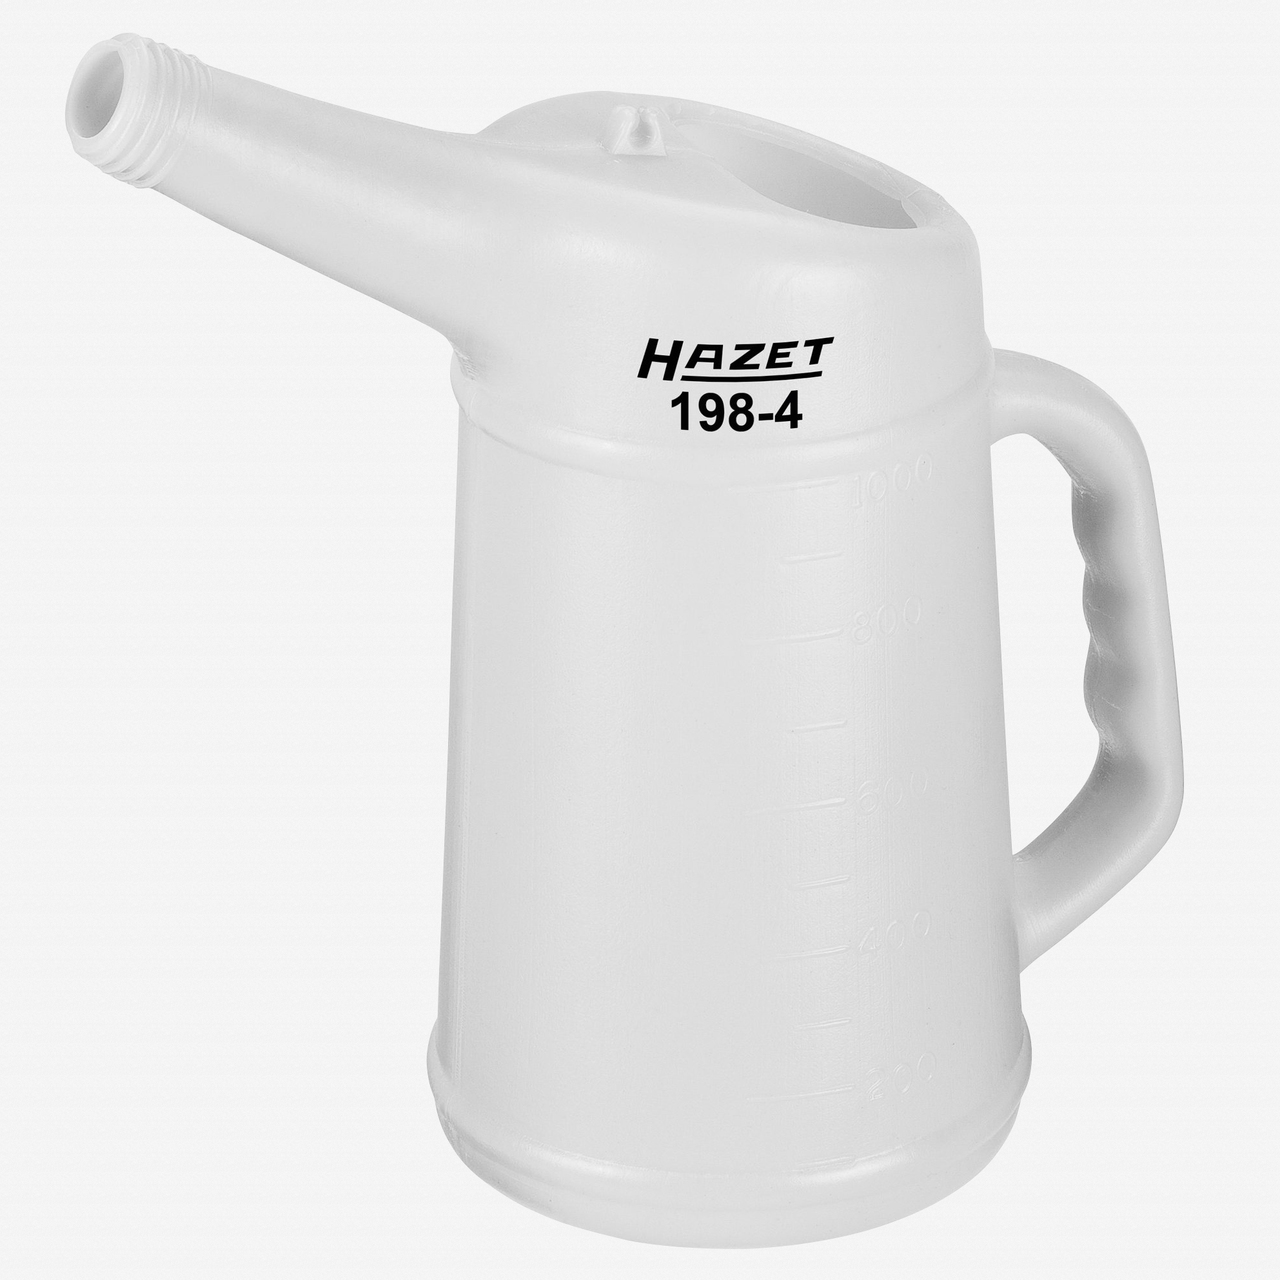 Hazet 198-4 Measuring cup  - KC Tool